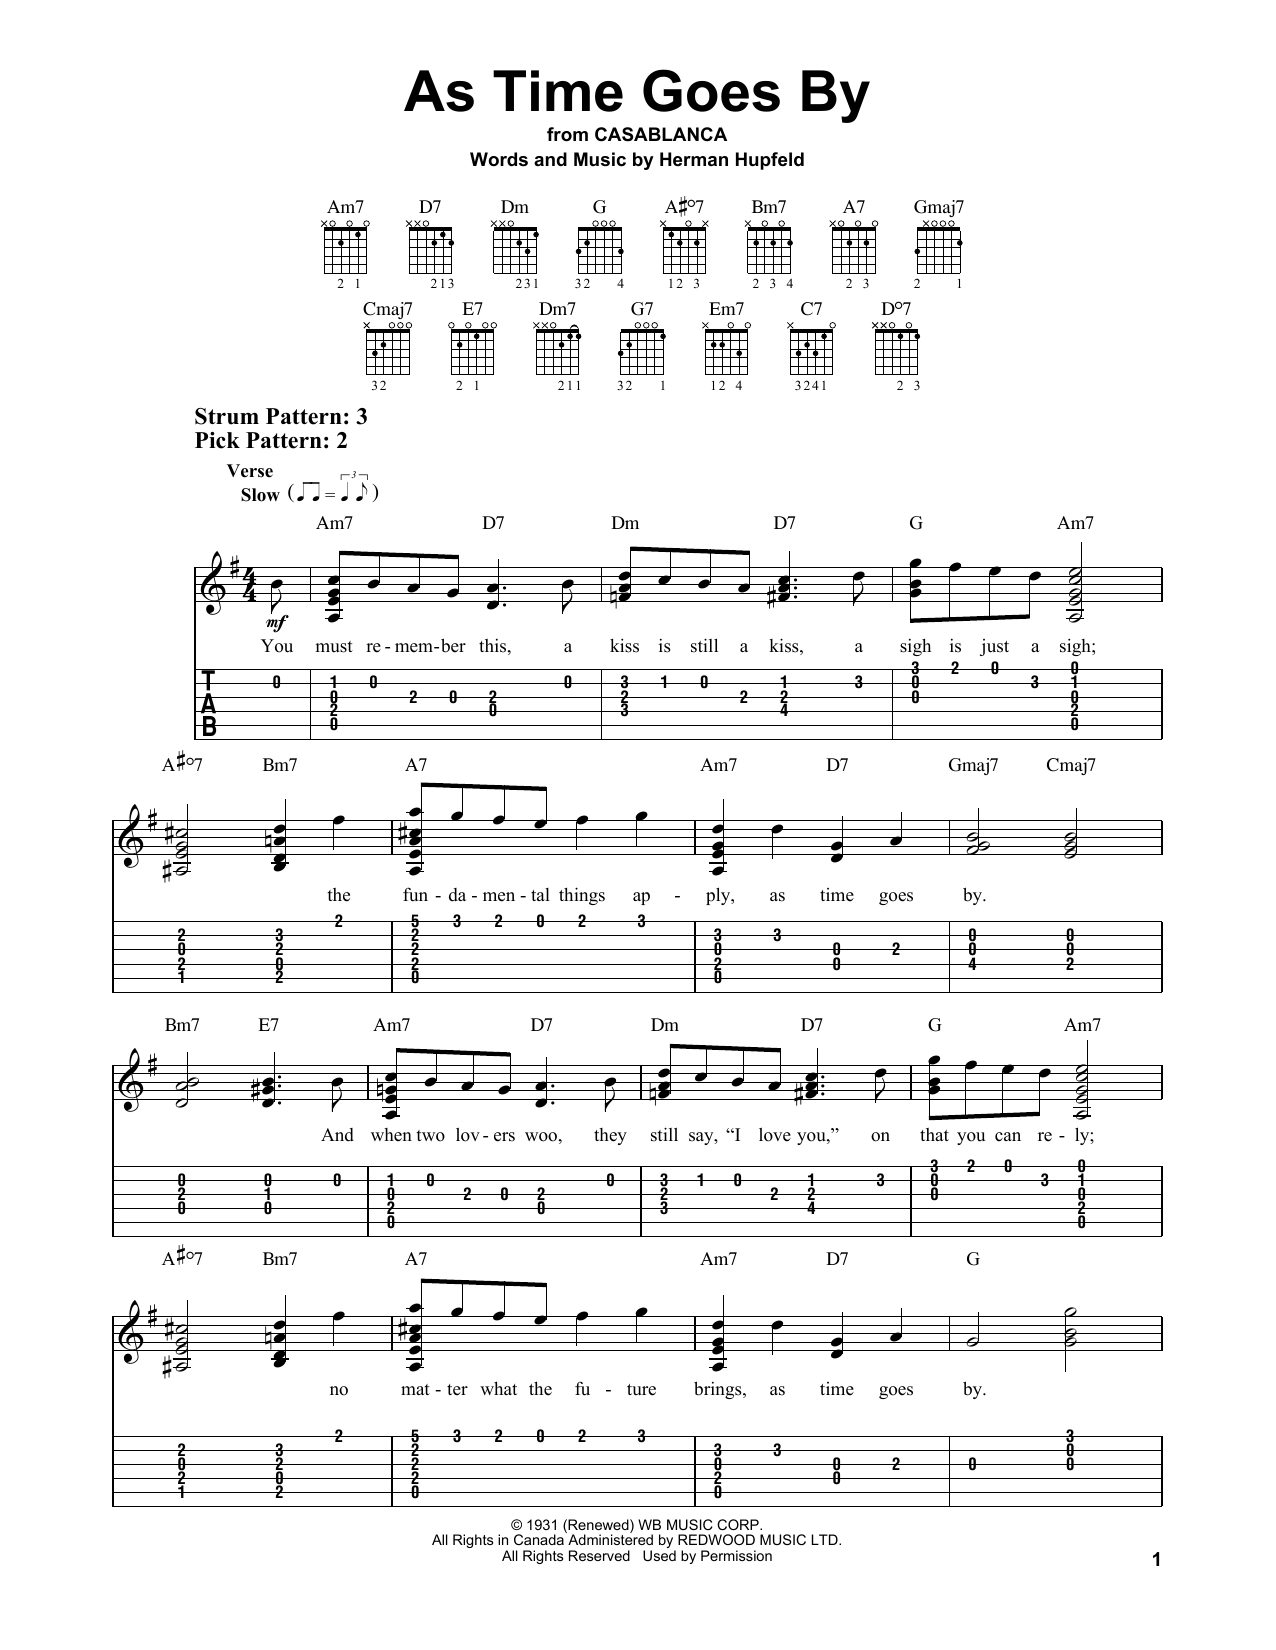 As time goes by guitar chords